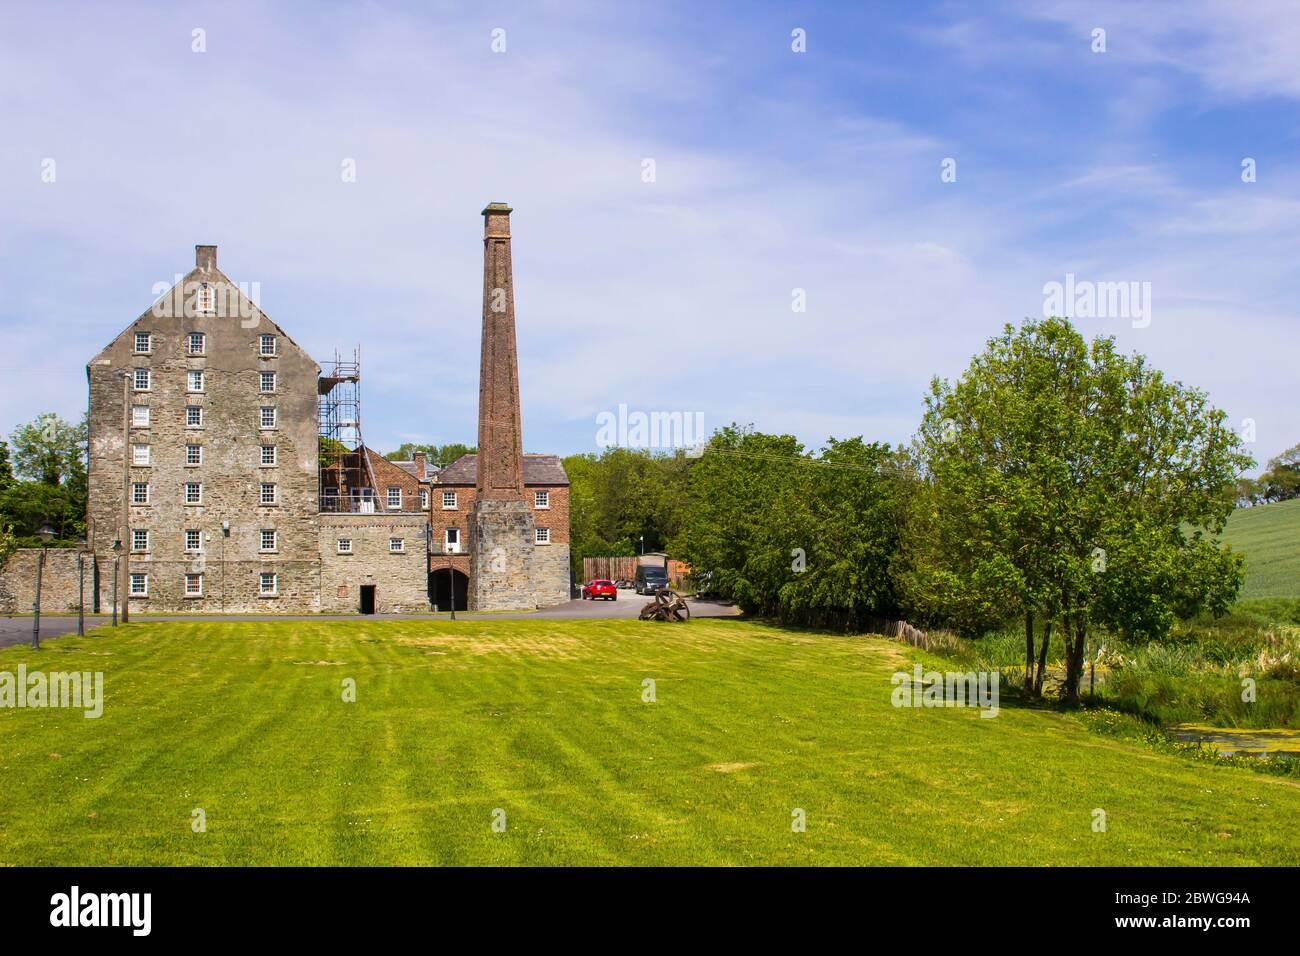 31 May 2020 The historic Ballydugan flourmill and chimney stack located near Downpatrick in County Down Northern Ireland. This restored building is no Stock Photo